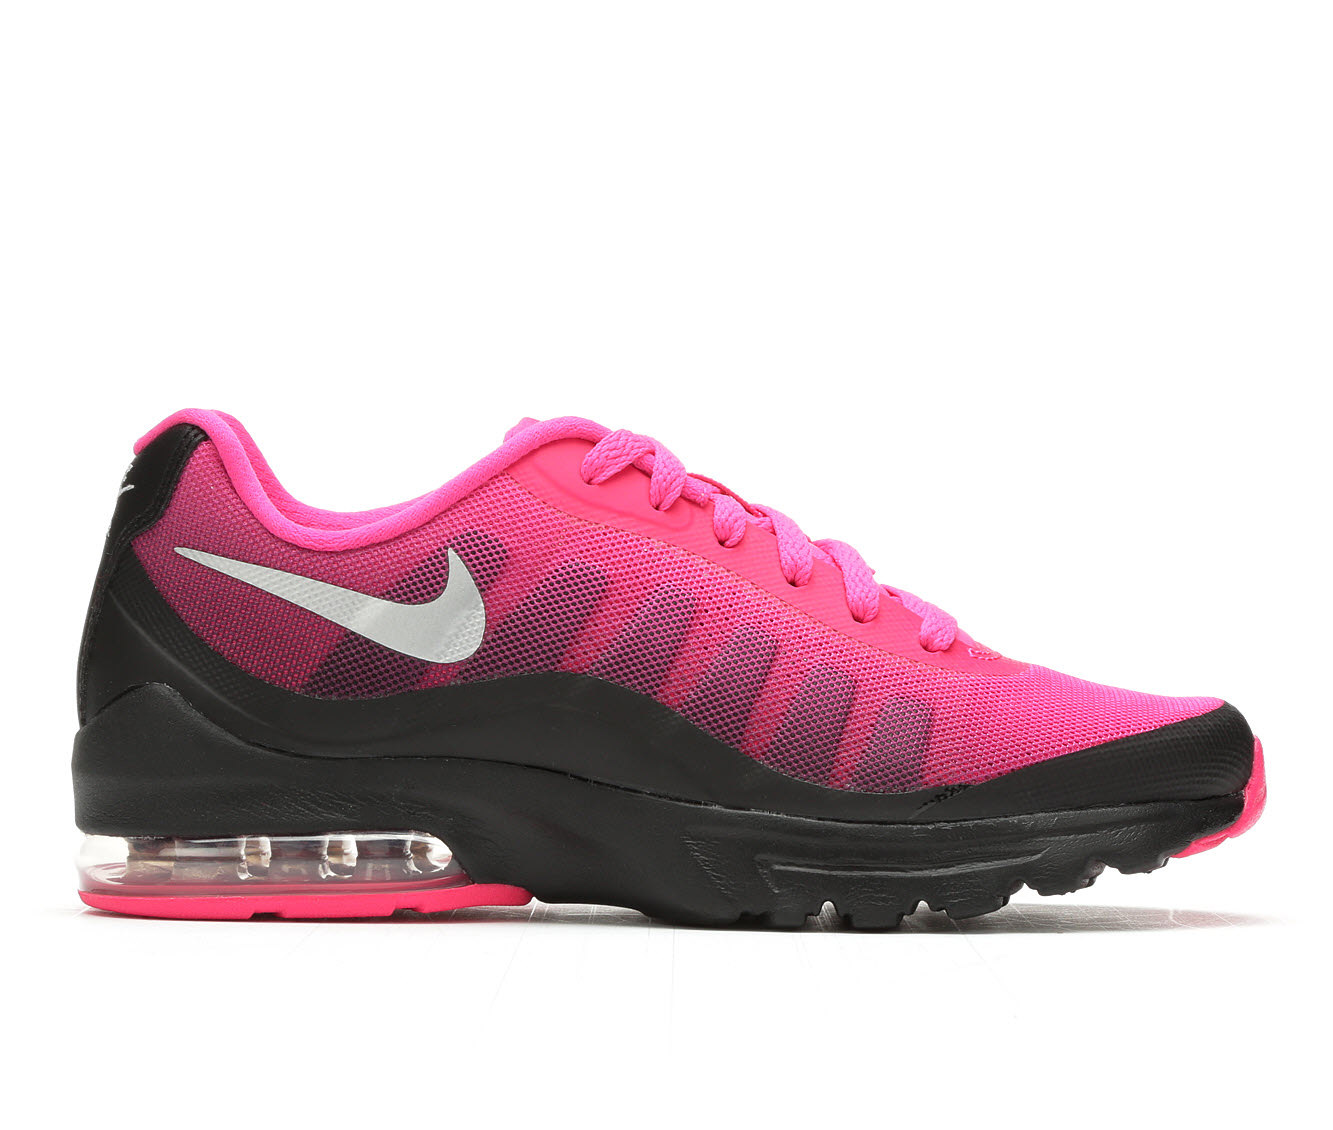 Women's Nike Air Max Invigor Print Running Shoes (Pink - Size 7) 1497893